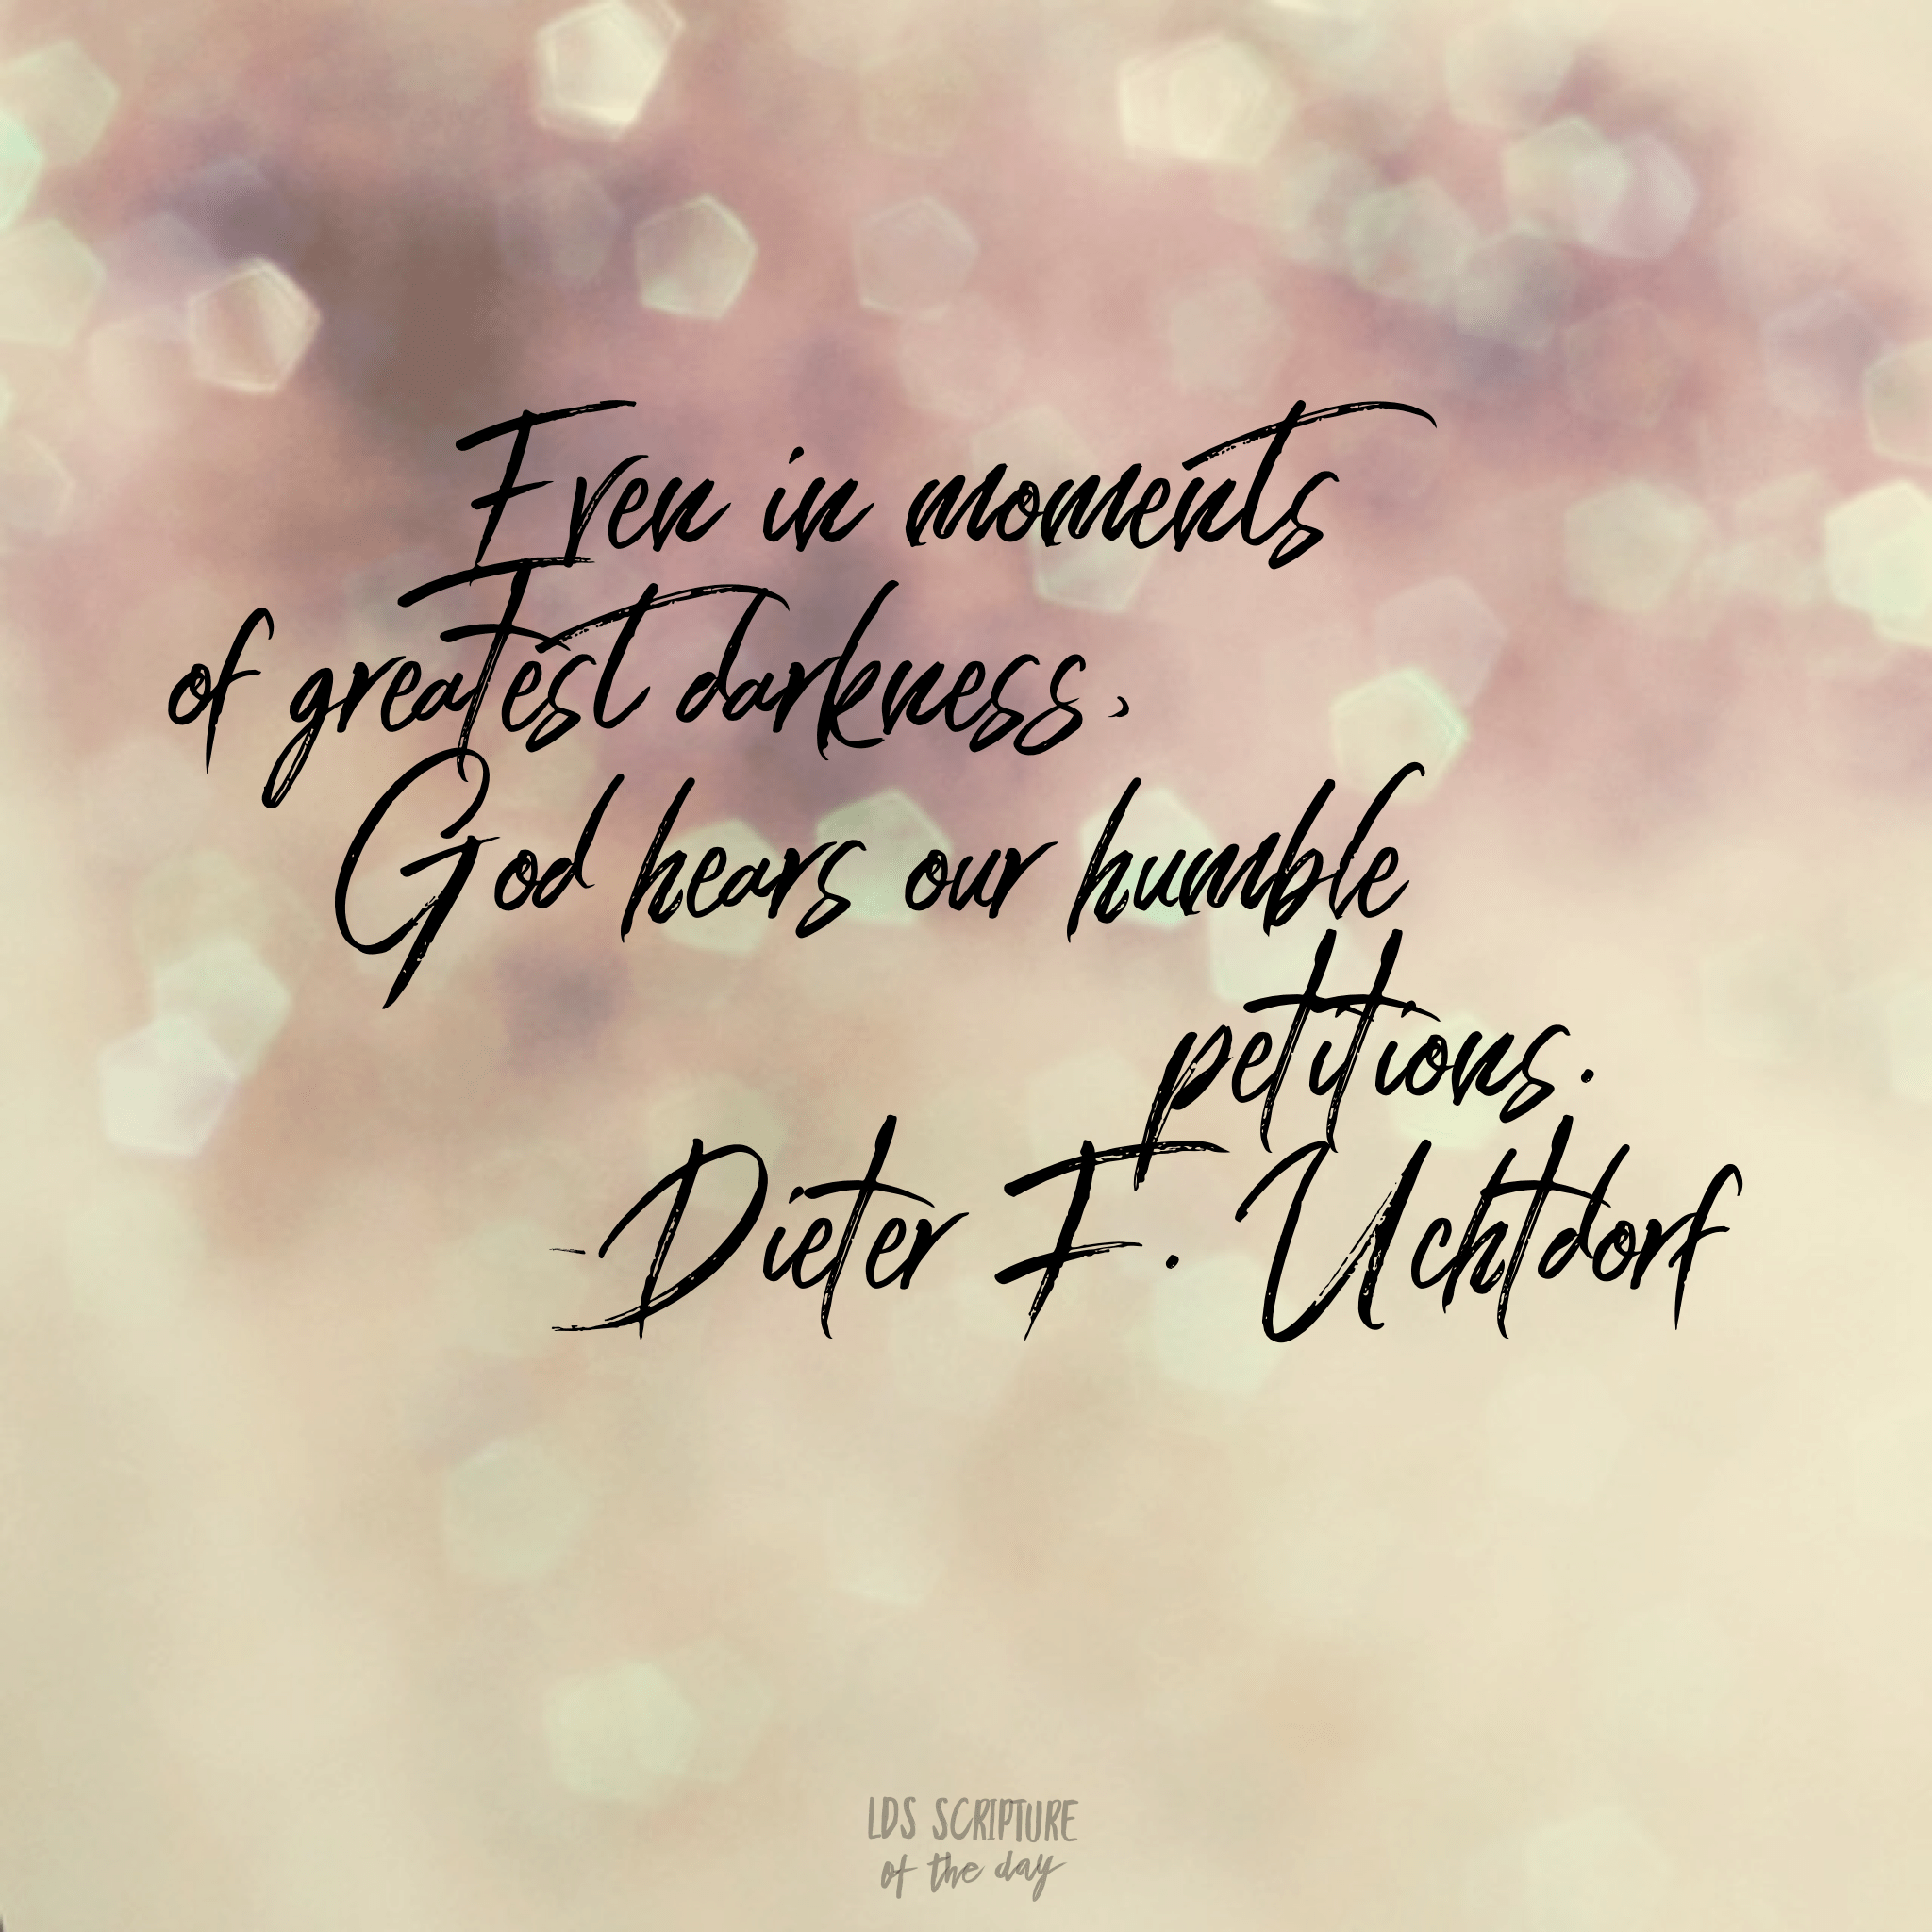 Even in moments of greatest darkness, God hears our humble petitions. —Dieter F. Uchtdorf